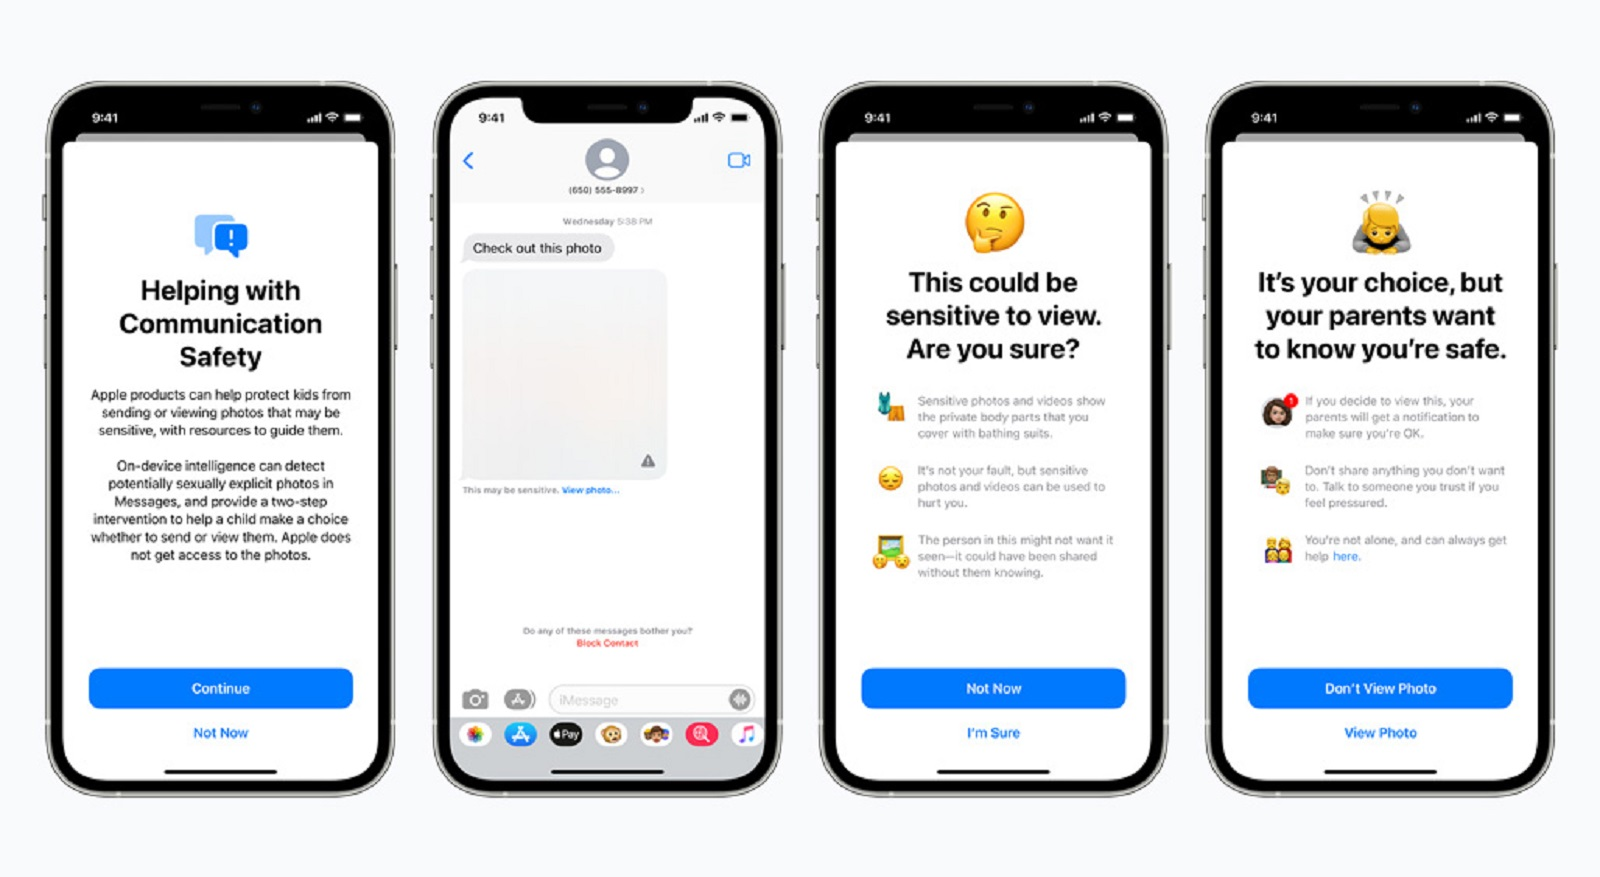 Images showing Apple's Child Safety feature